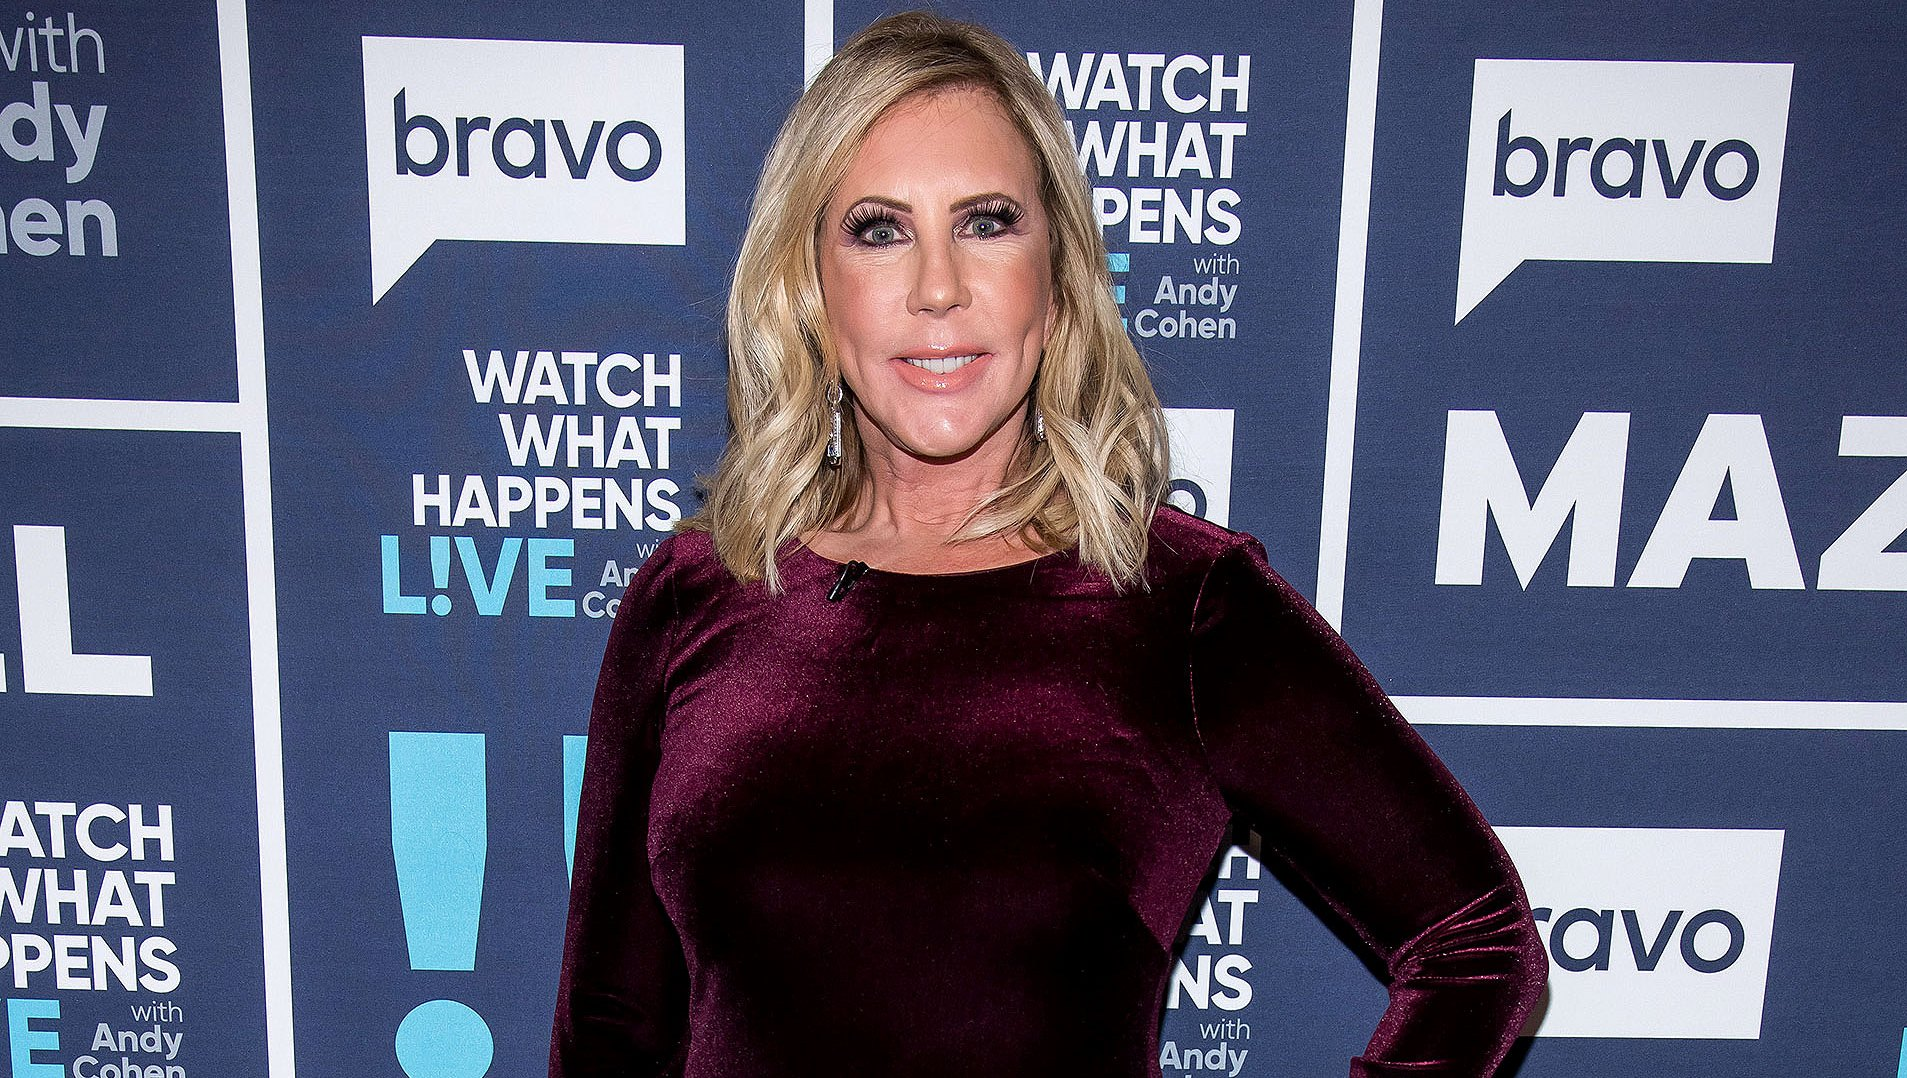 'RHOC' Star Vicki Gunvalson Begins Filming Season 14 Amid Kelly Dodd Drama